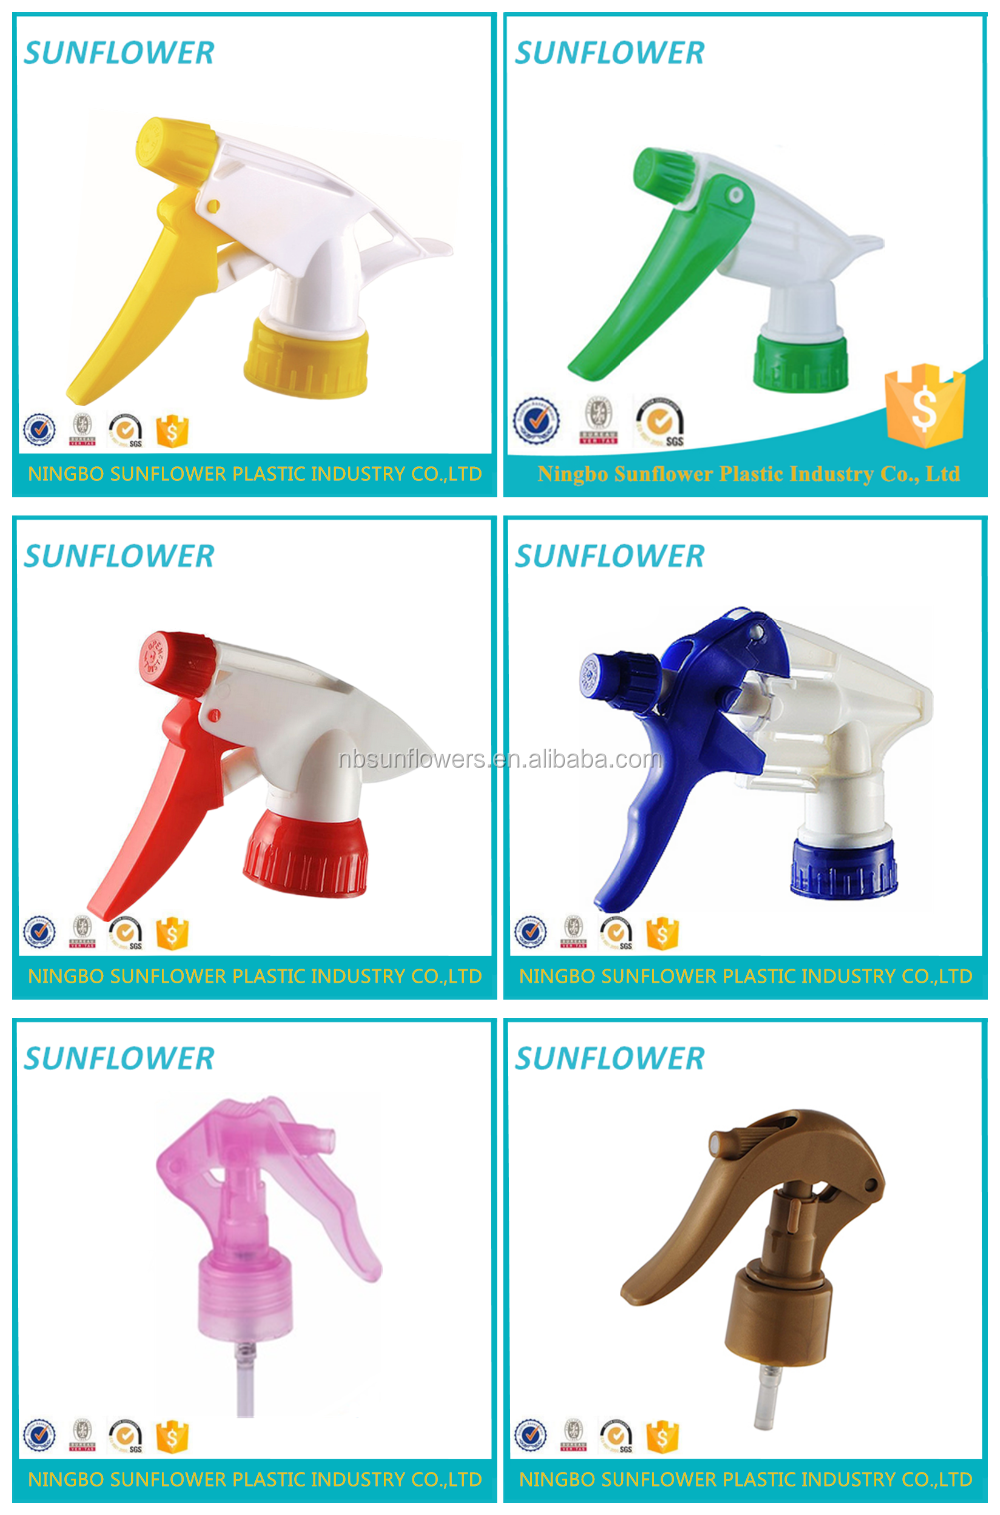 Top-selling China Ningbo Sunflower 28/410 PP trigger sprayer /sprayer agricultural